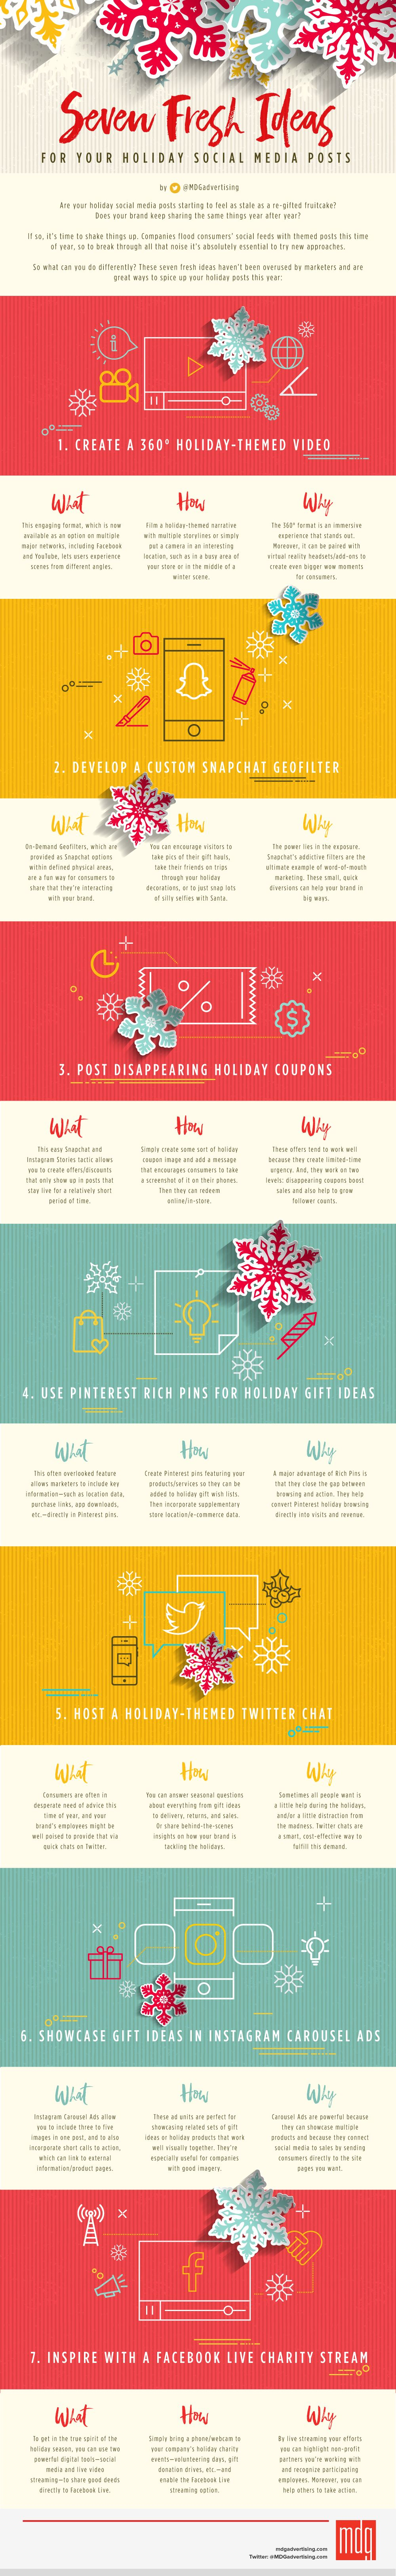 7 Fresh Ideas for Your Holiday Social Media Posts #Infographic